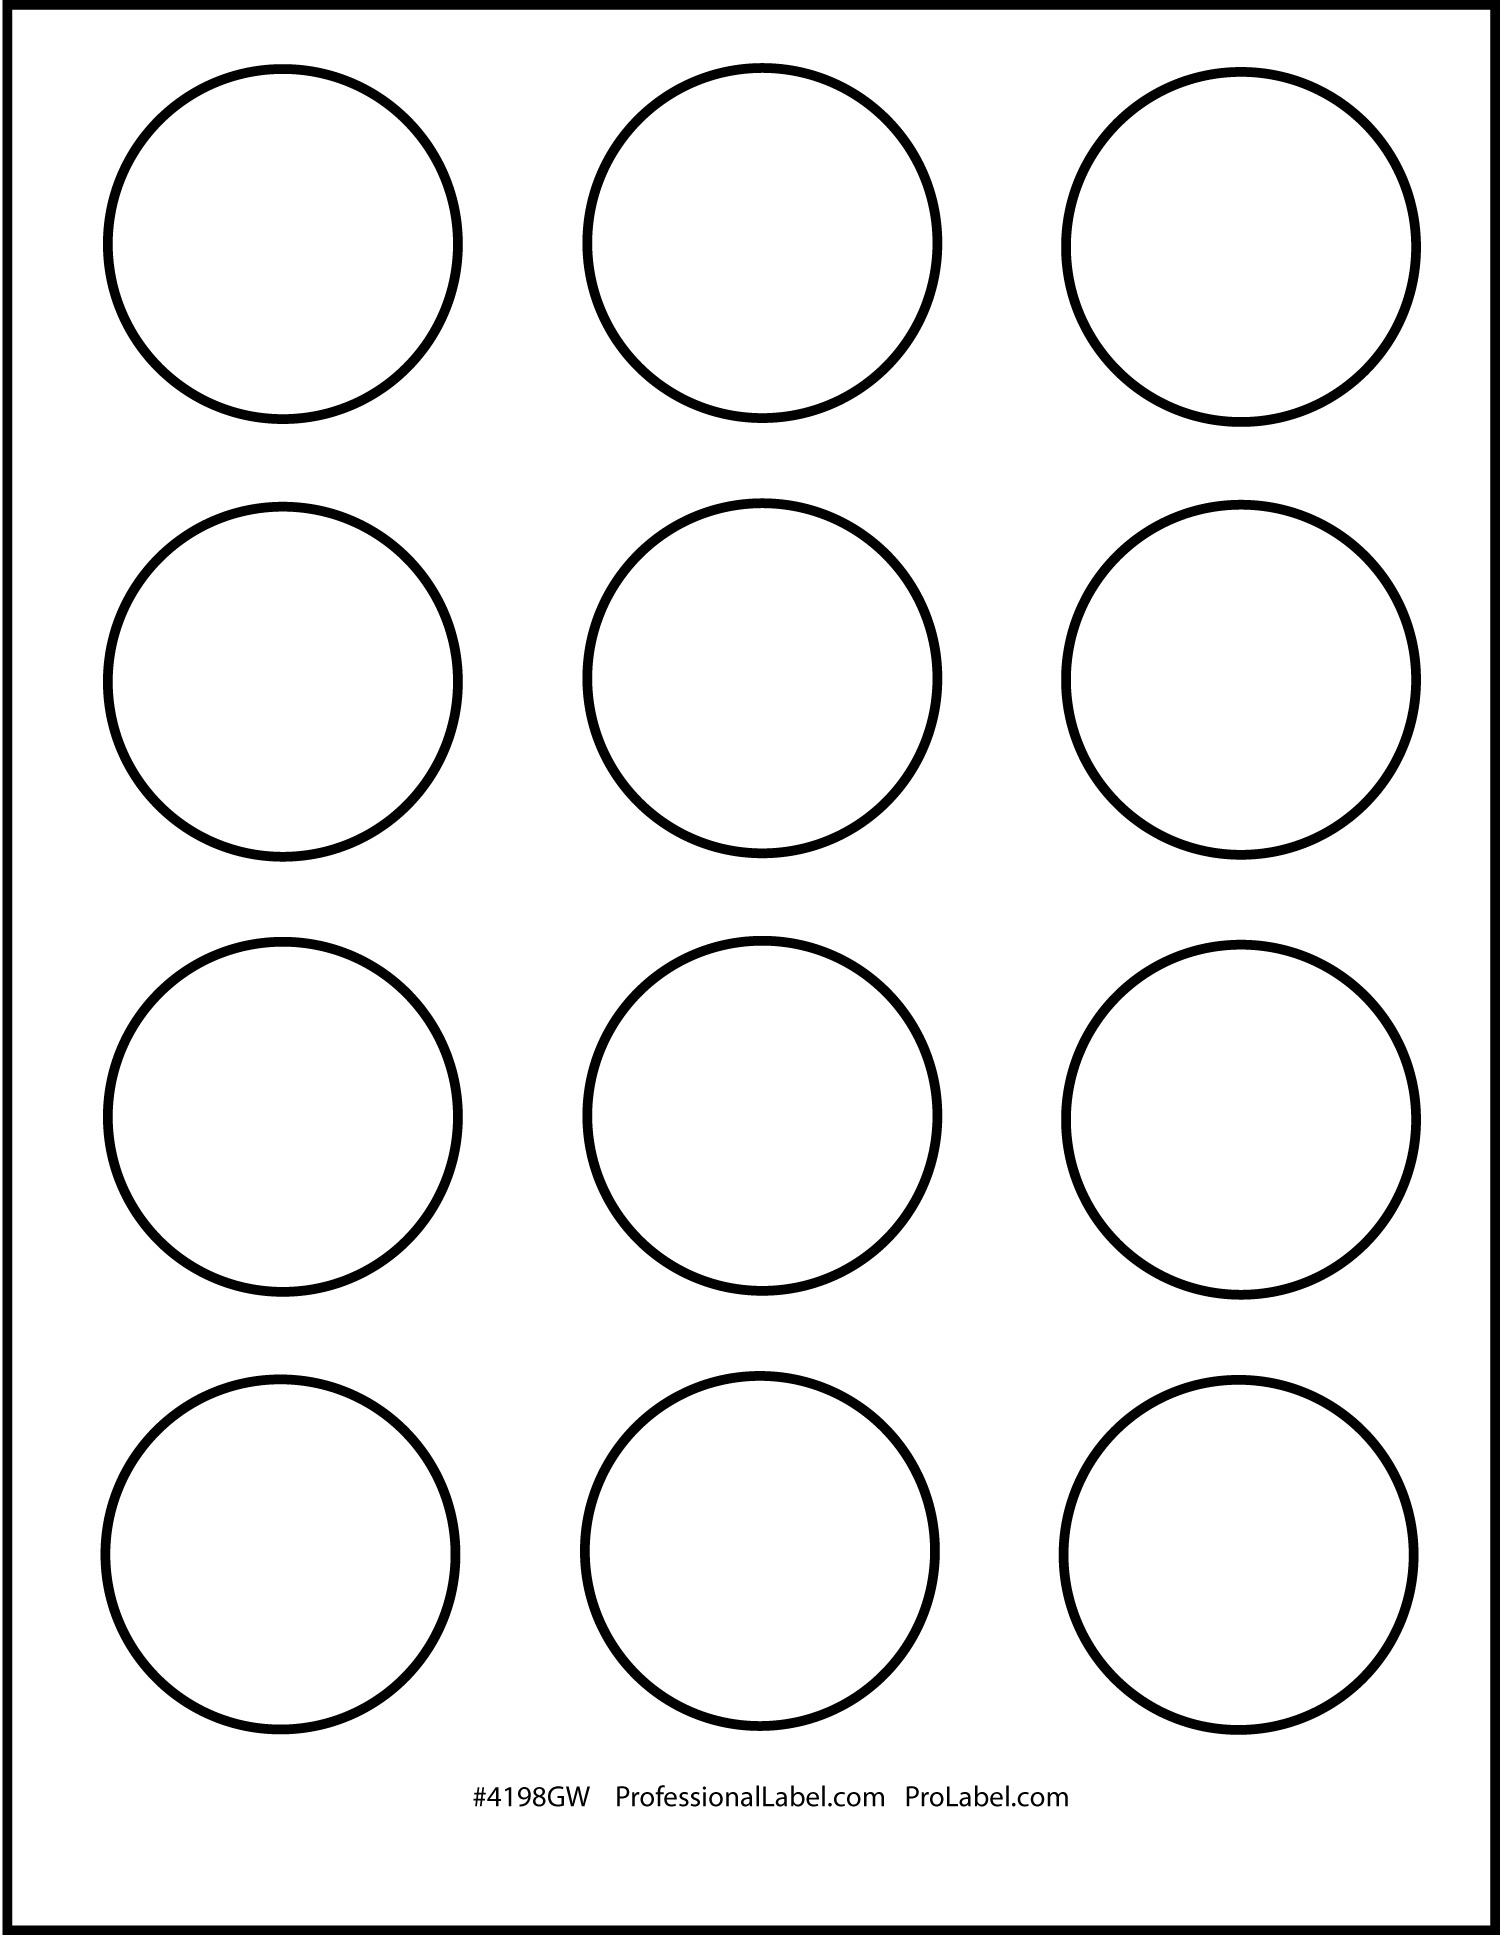 Matte Clear Printable Sticker Labels 50 Sheets 2 Inch